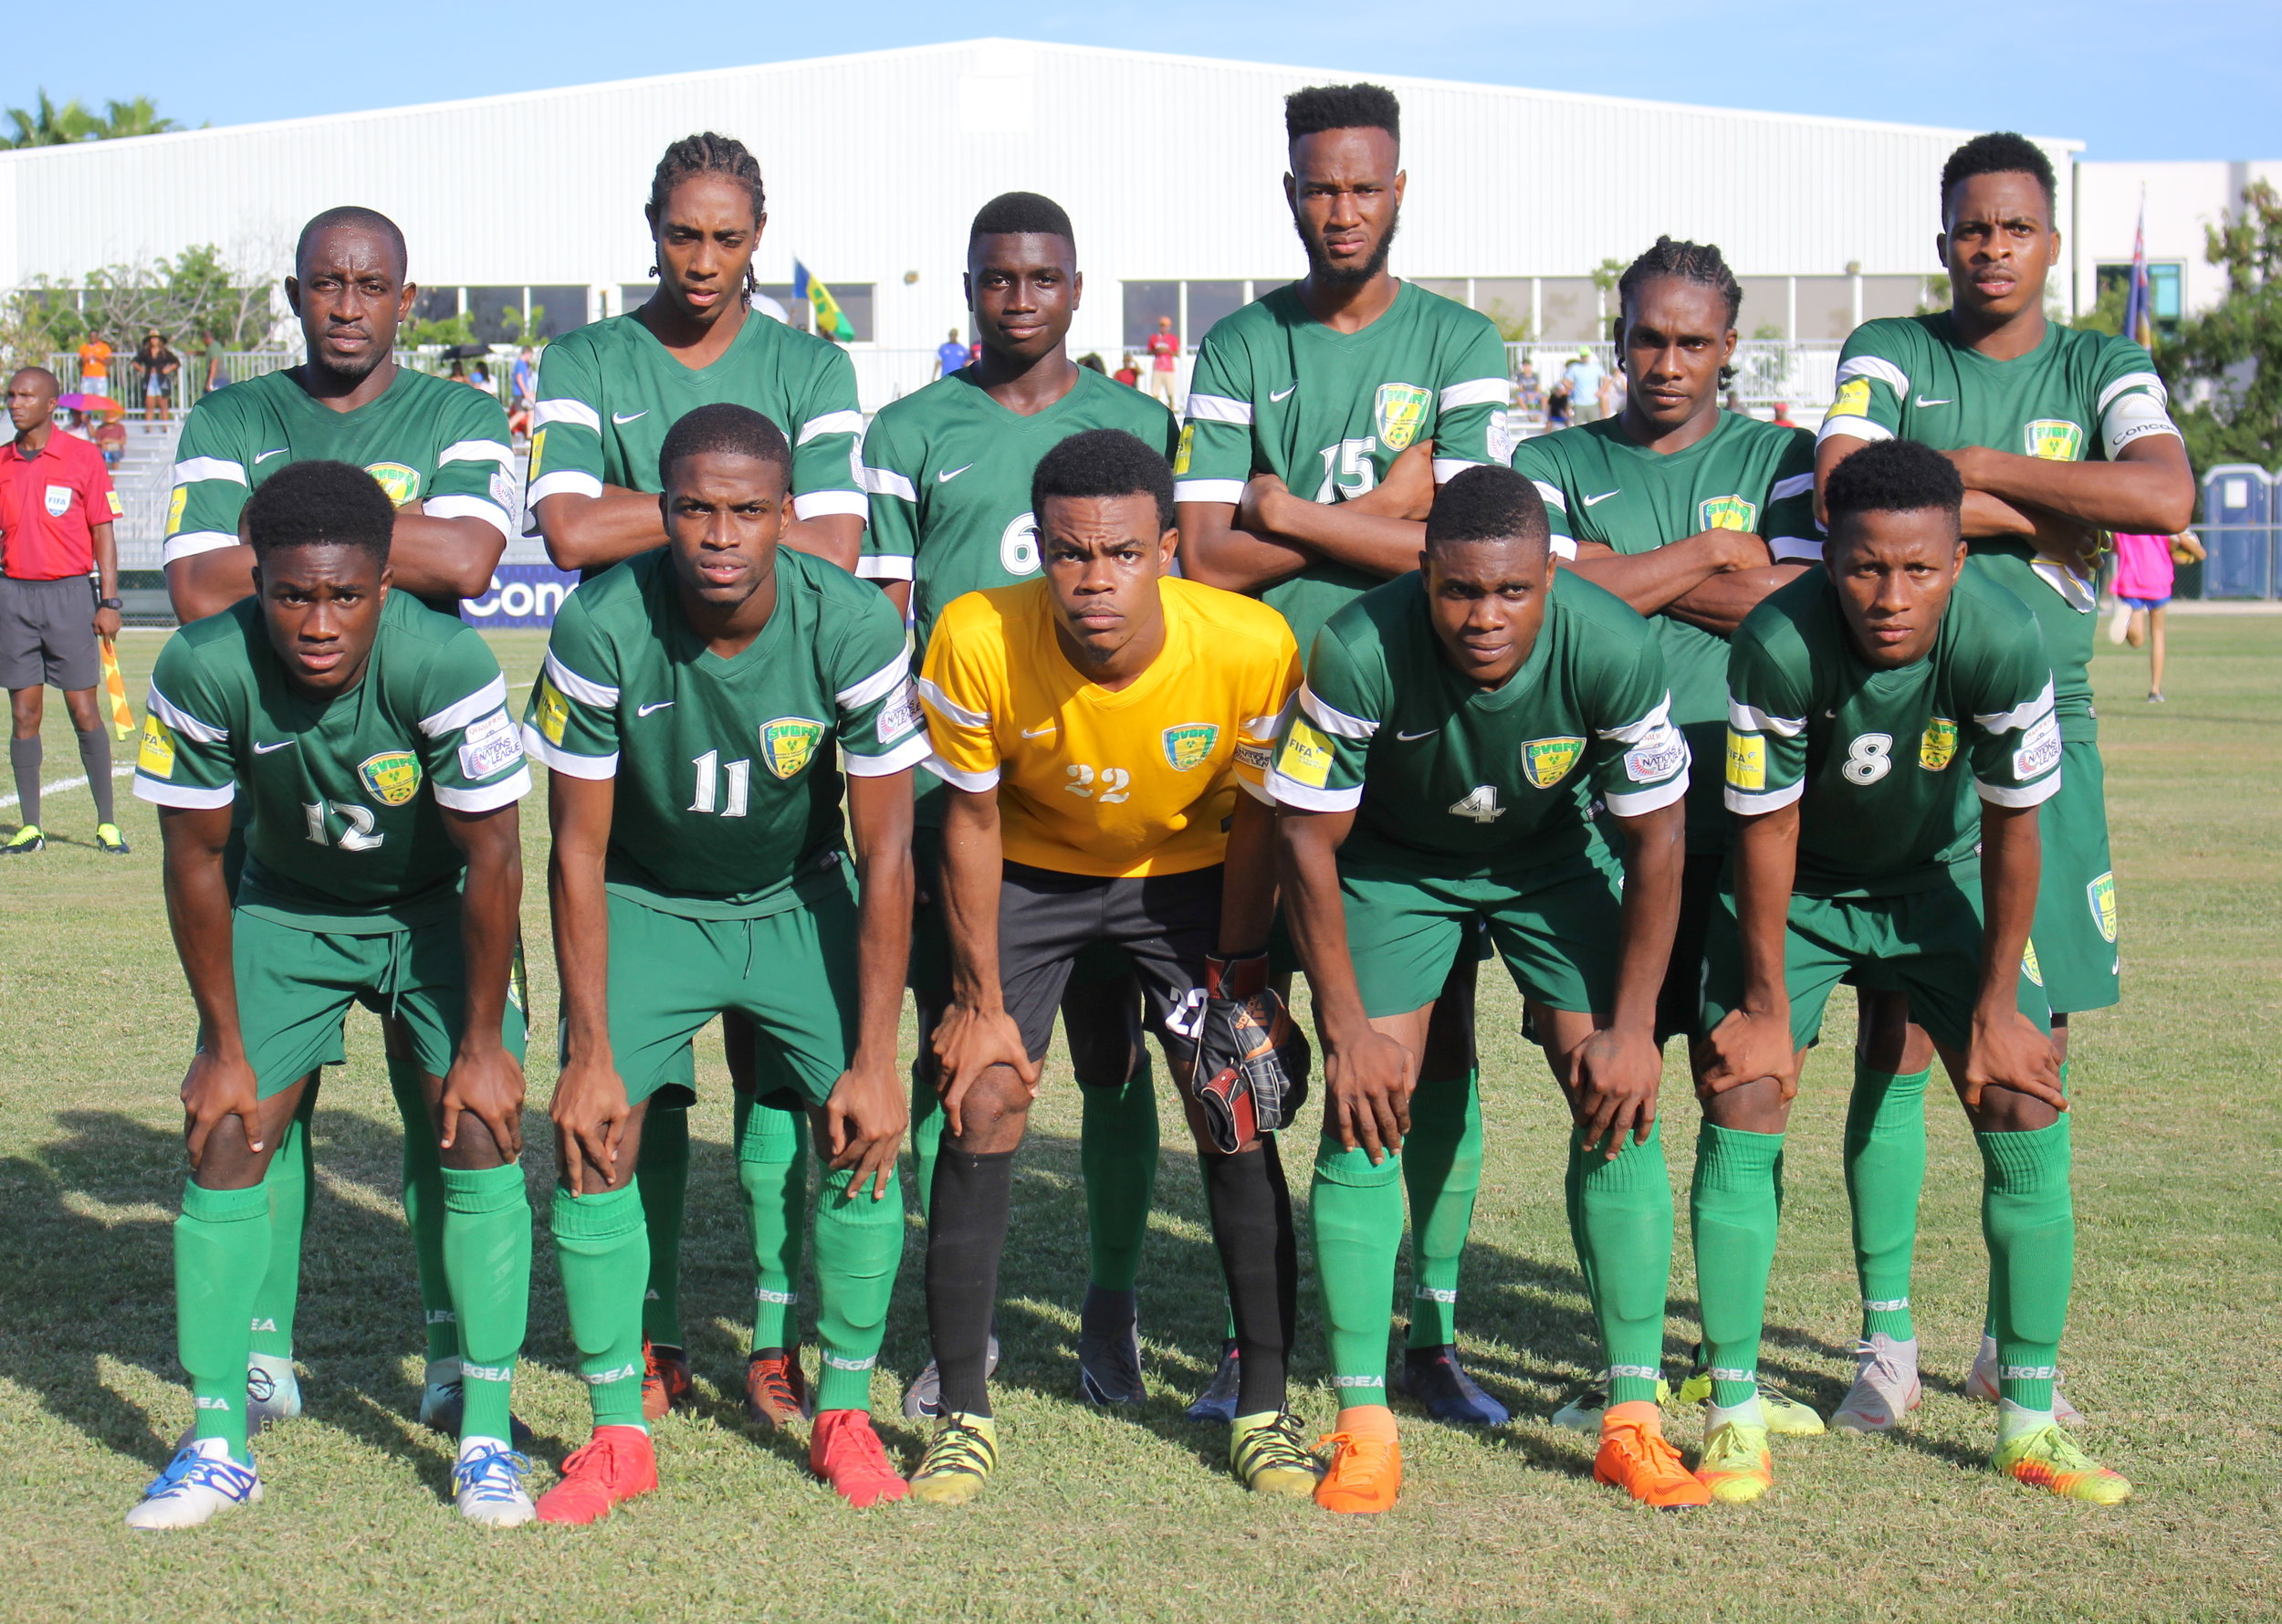 St. Vincent & The Grenadines starting 11